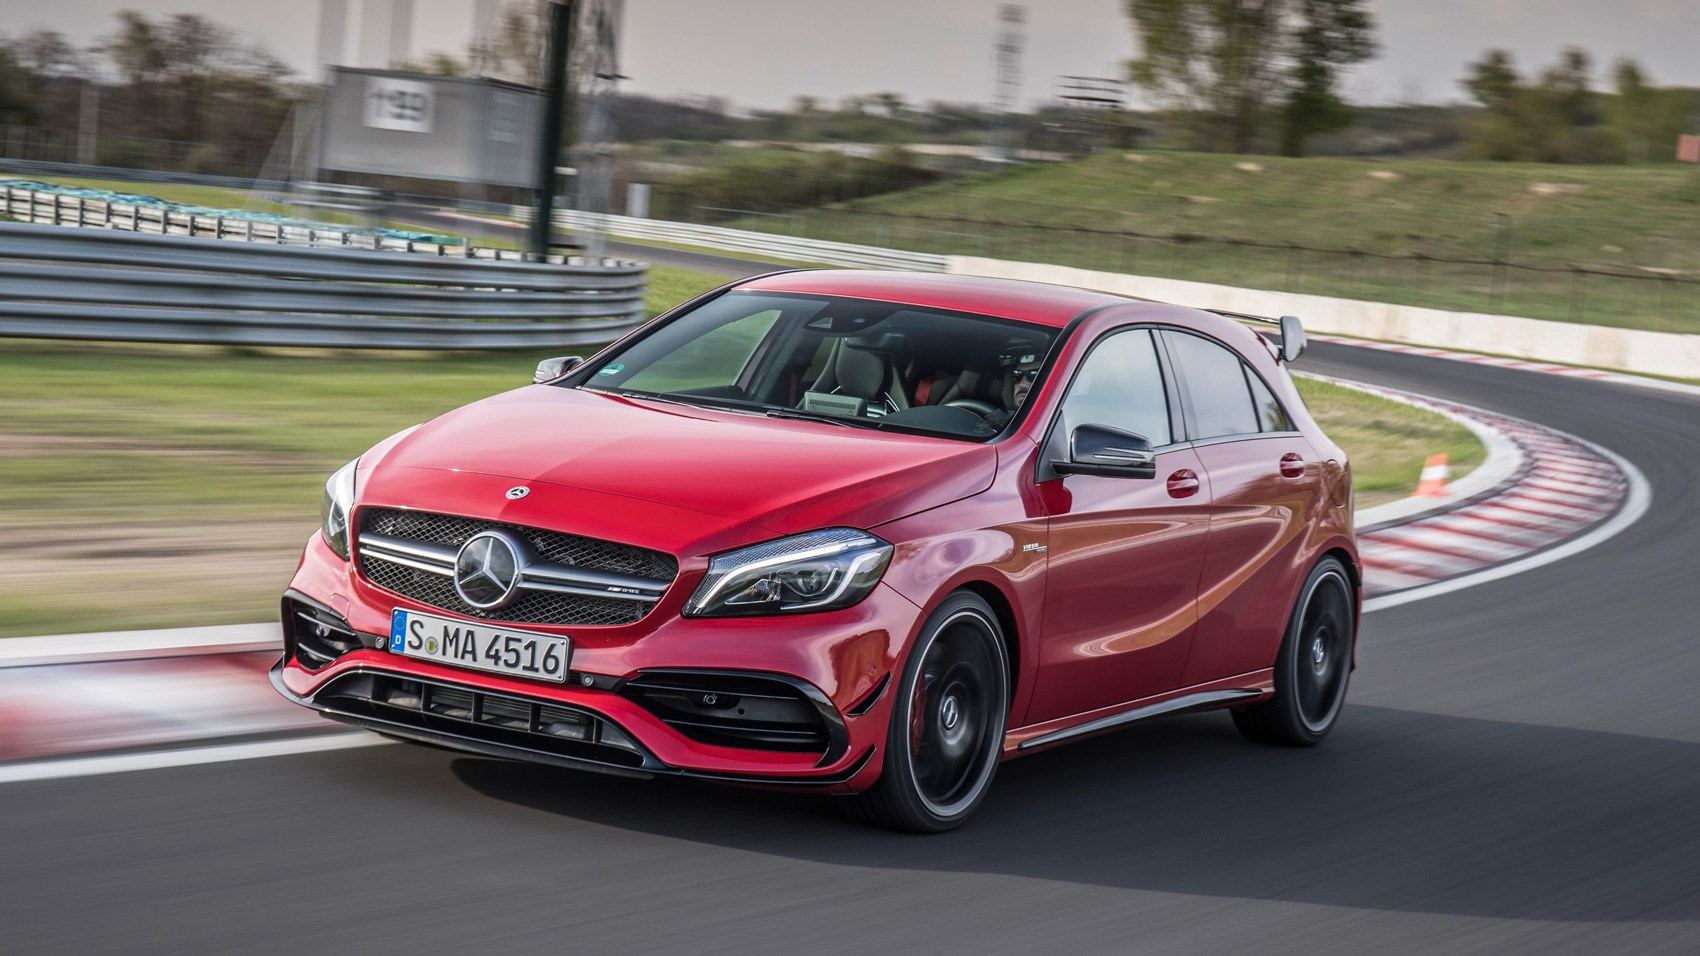 Mercedes amg a45 2017 review by car magazine for Mercedes benz a45 amg